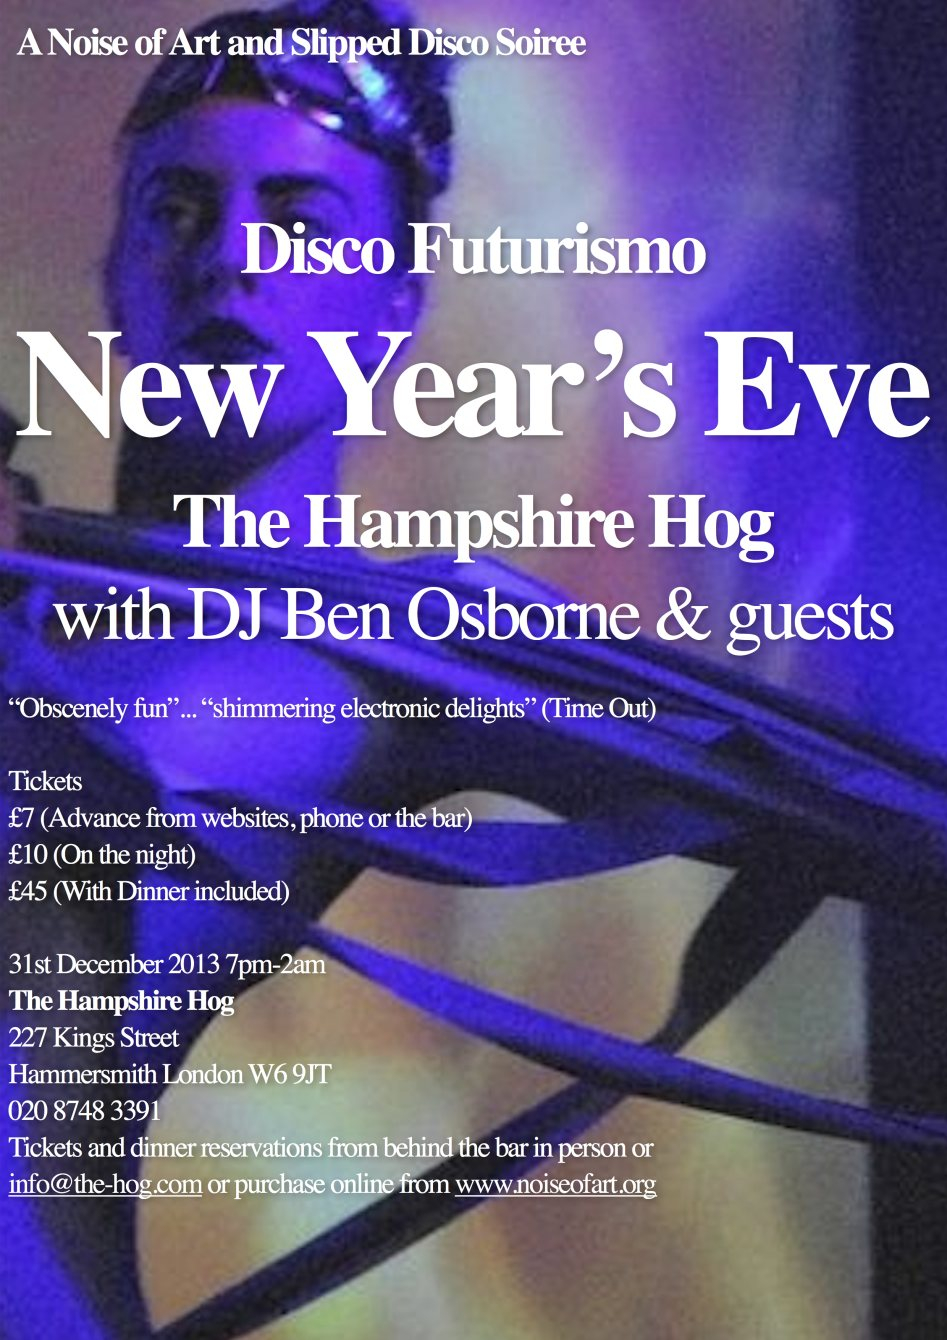 Noise of Art's Disco Futurismo New Year's Eve - Flyer front